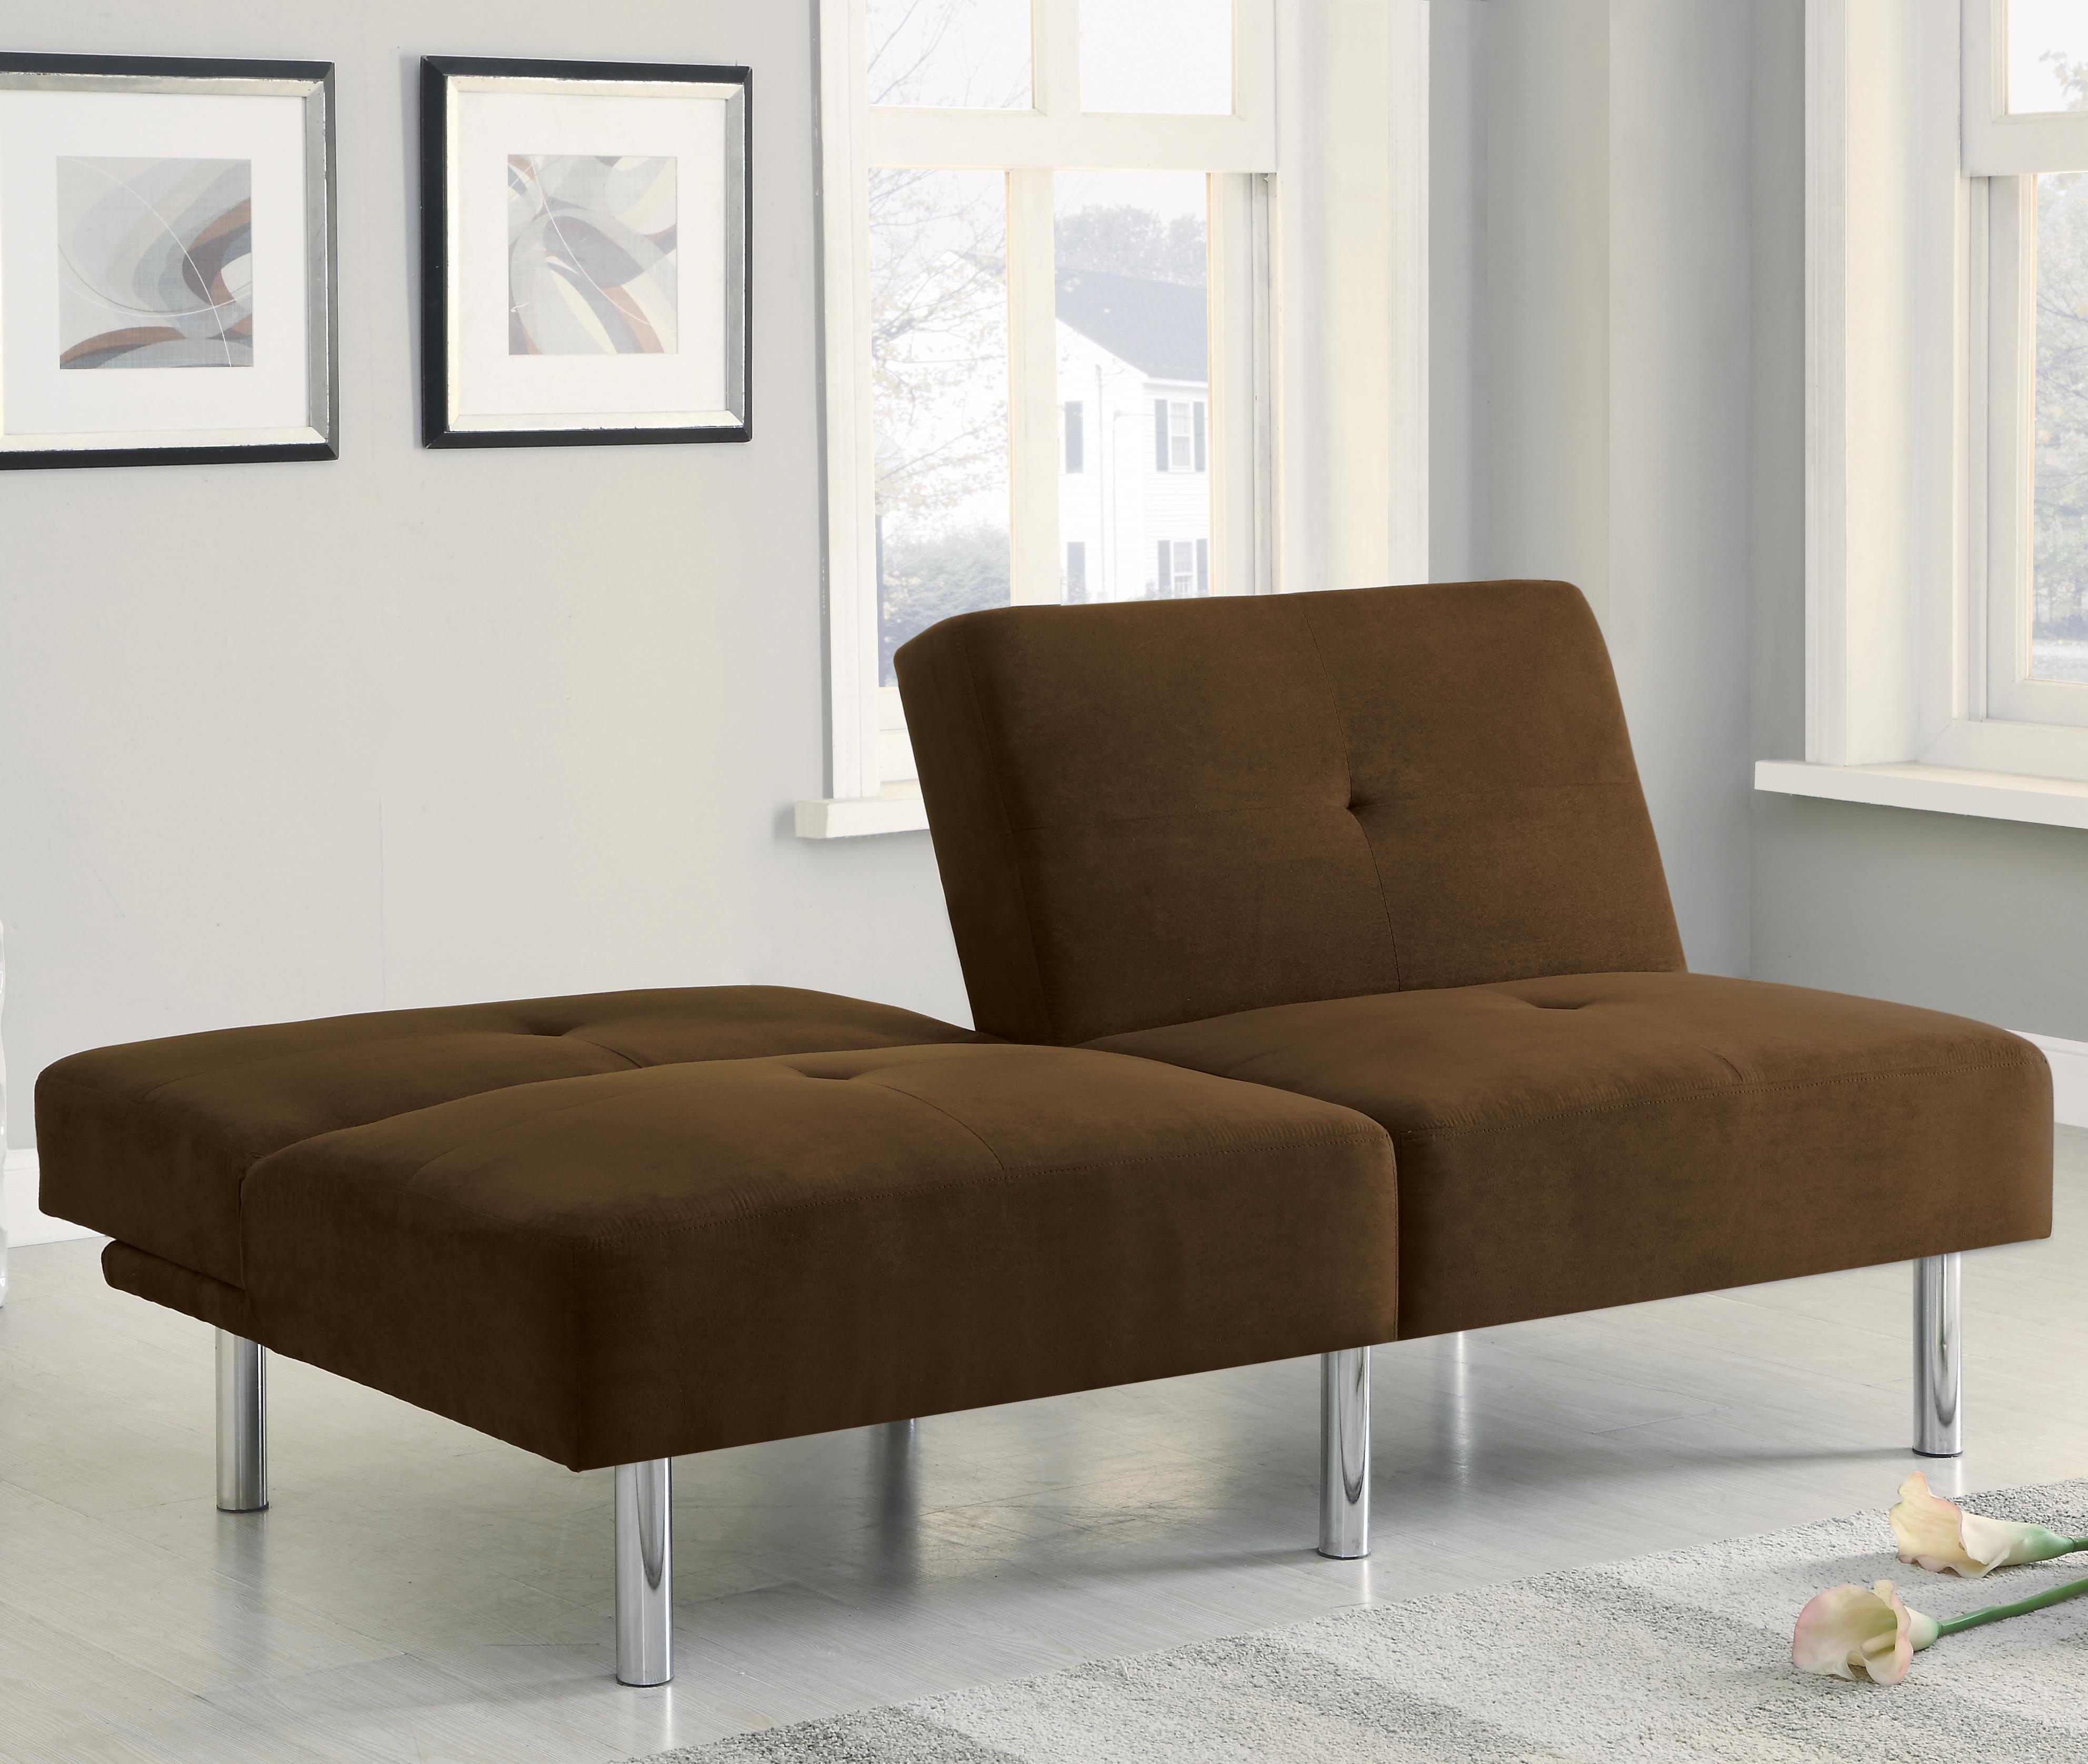 modern line furniture sofa sleepers rv sofas beds and futons  contemporary microfiber bed